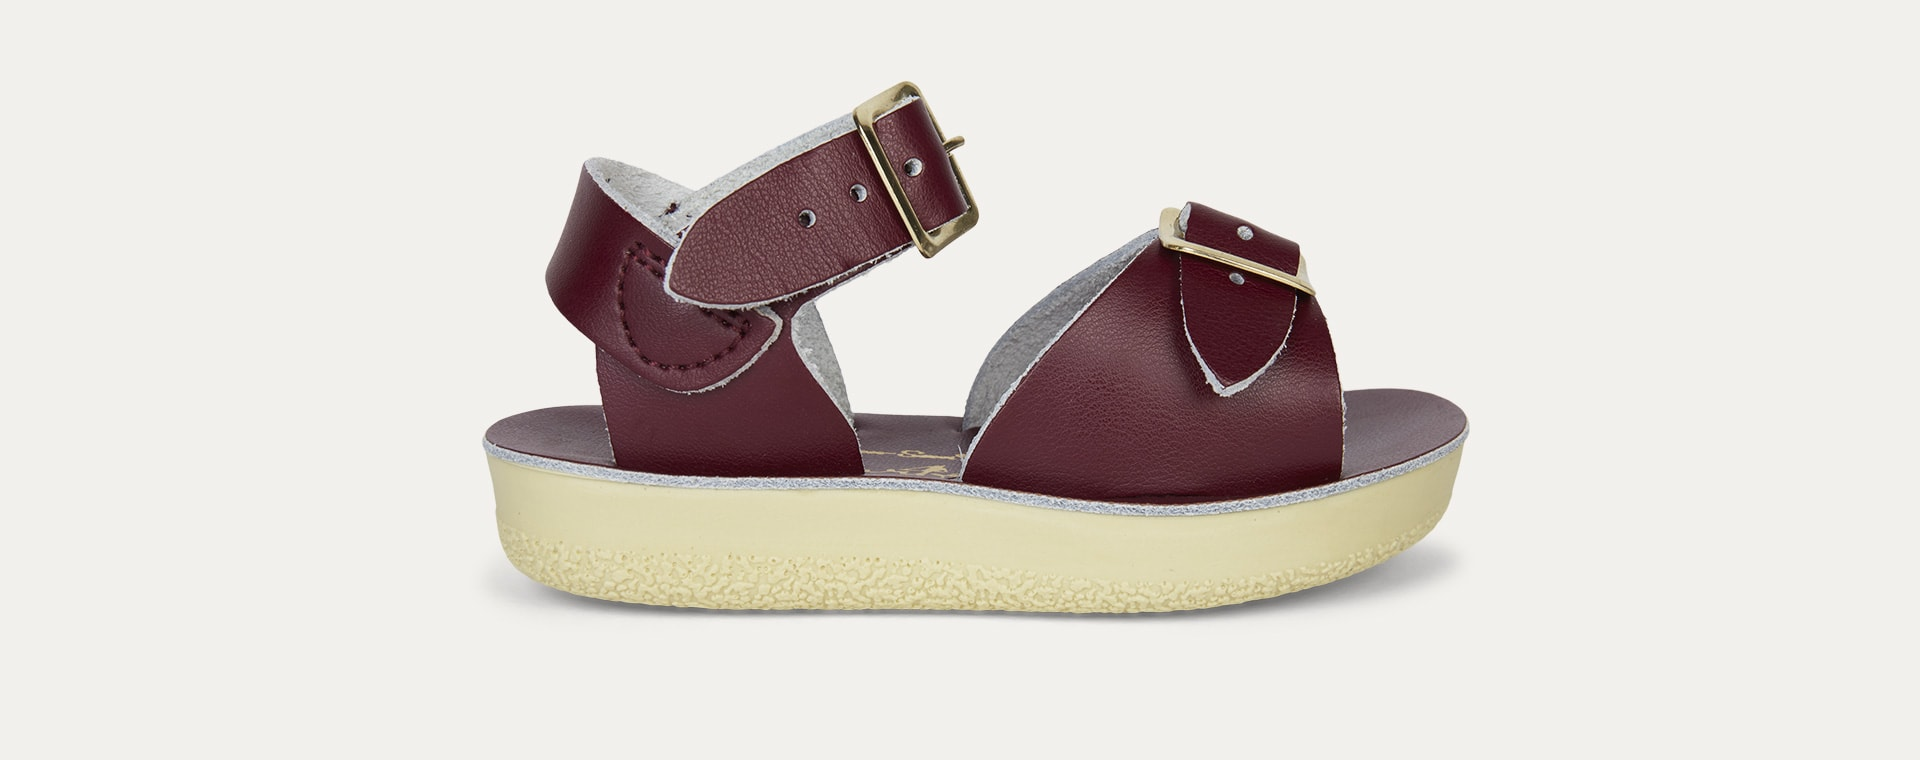 Claret Salt-Water Sandals Surfer Sandal